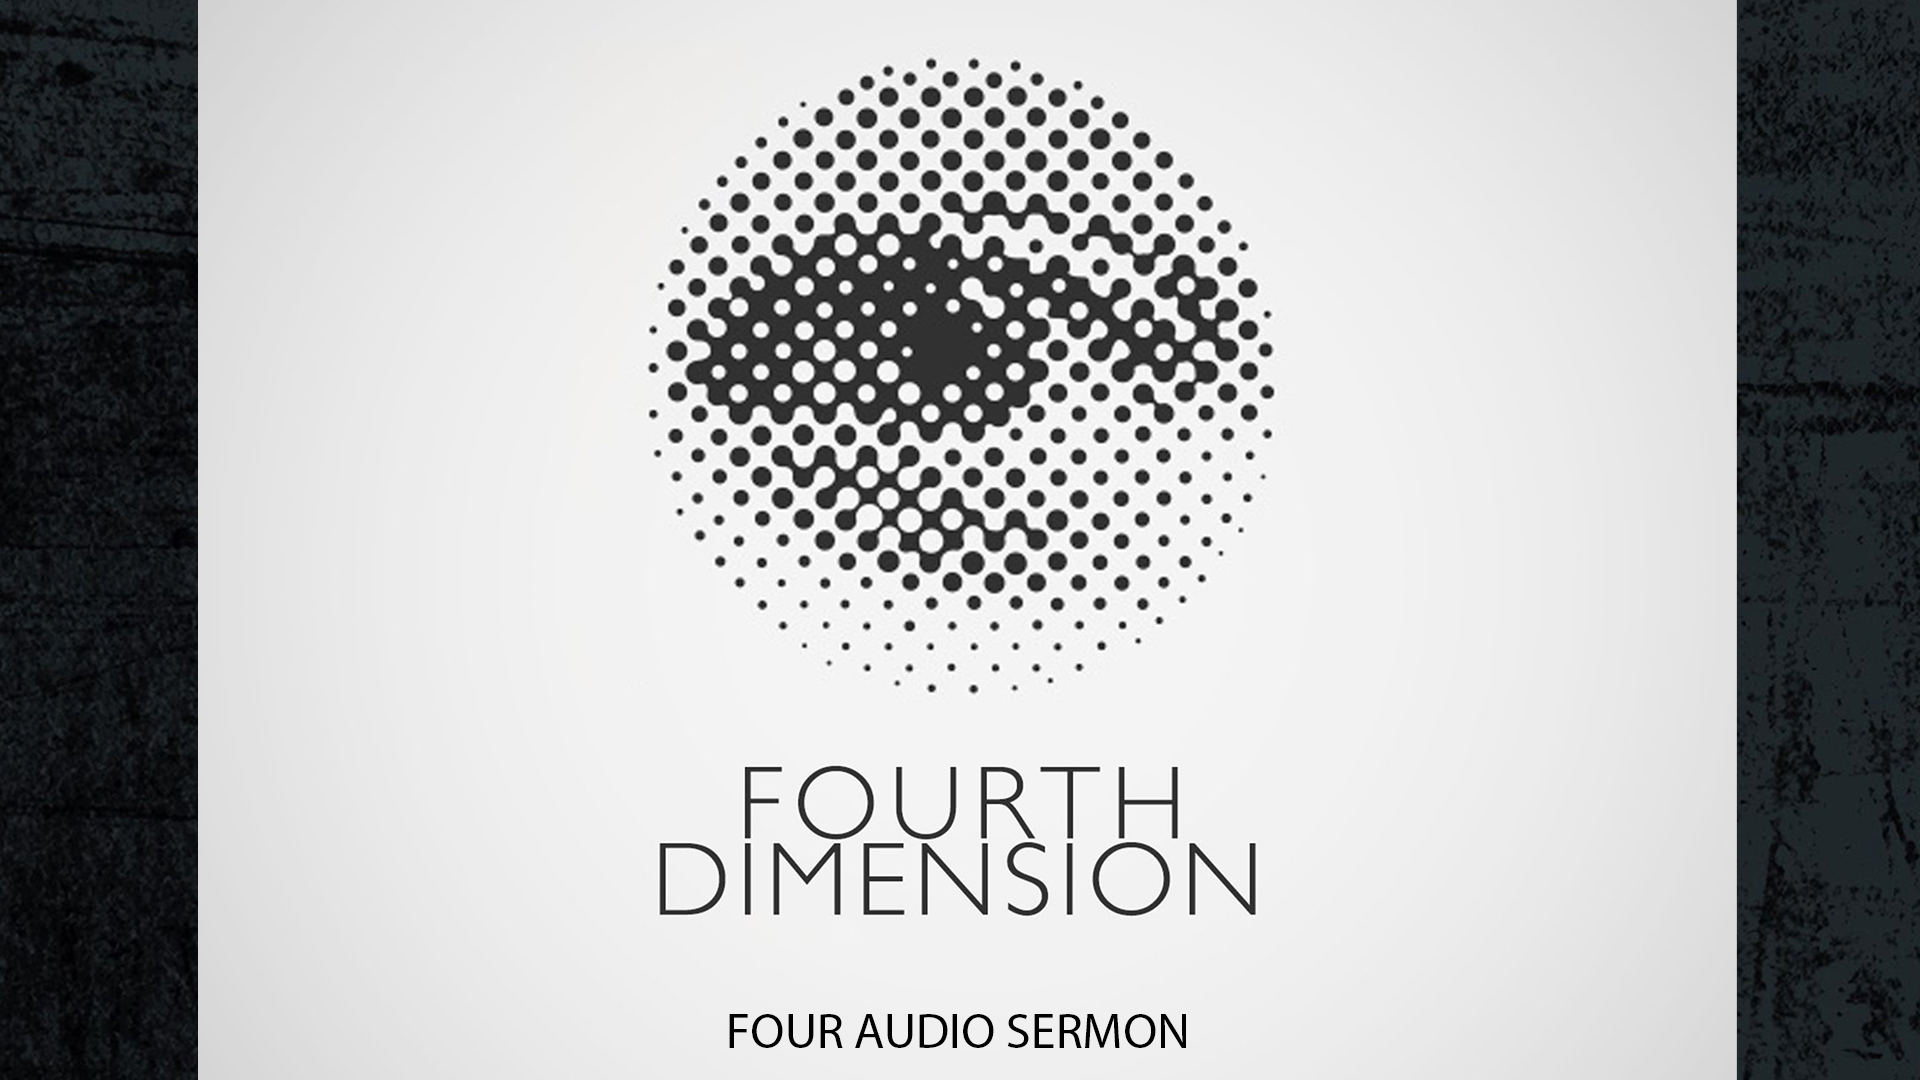 https://vladimirsavchuk.com/resources/fourth-dimension-audio-series/